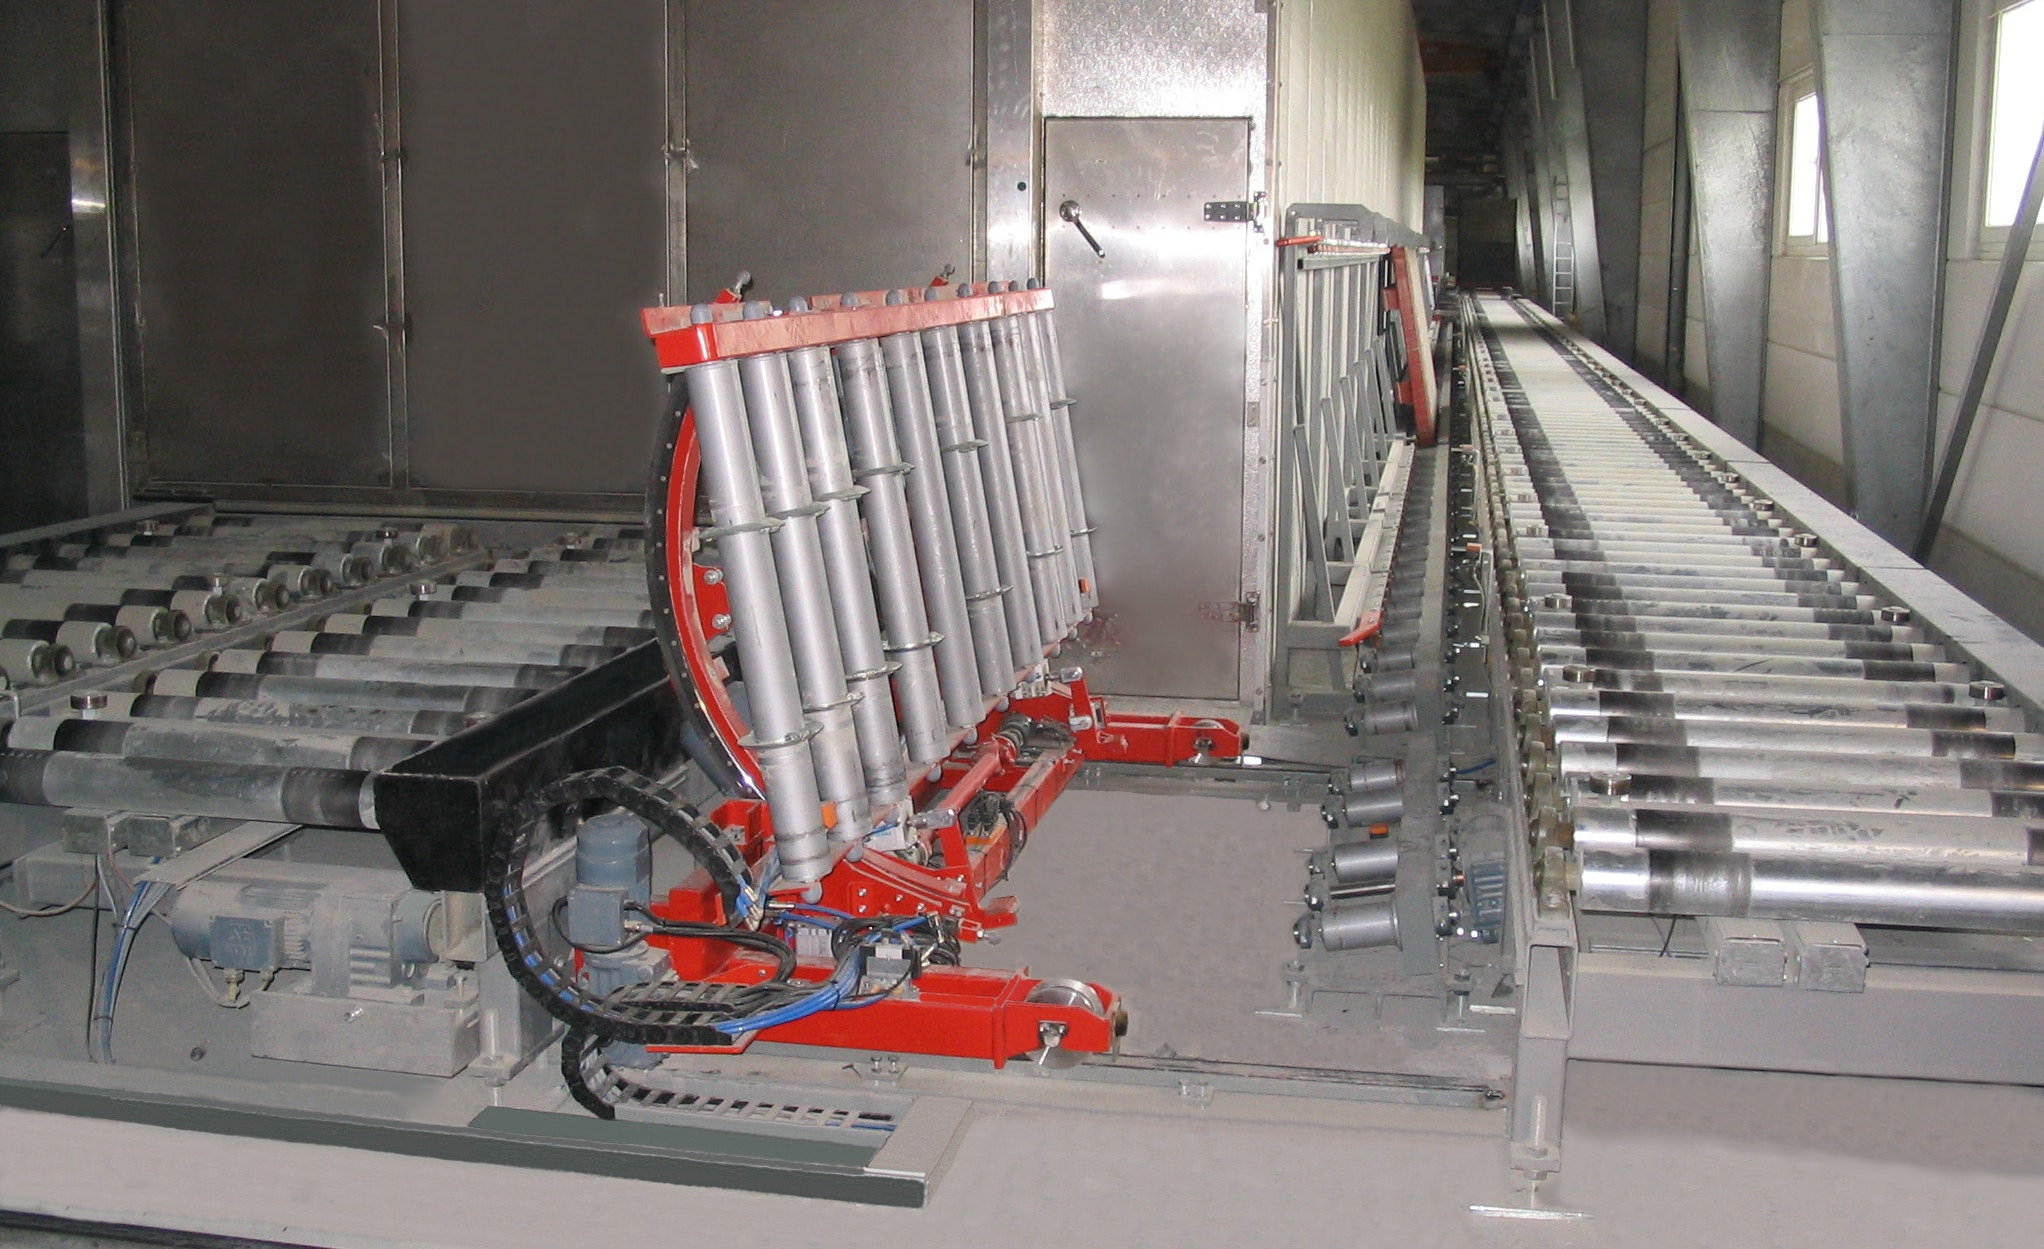 Tilting car for transport frames:   The tilting car (with roller conveyor) is a special construction that allows the transport frame to be turned by approx. 80° and then transferred to a vertical support roller conveyor (inclination approx. 80°). On the picture there is the empty tilting car (turmed by approx. 80°). On the right,  next to the roller conveyor, the vertical support roller conveyor can be seen on the wall (inclination approx. 80°)..